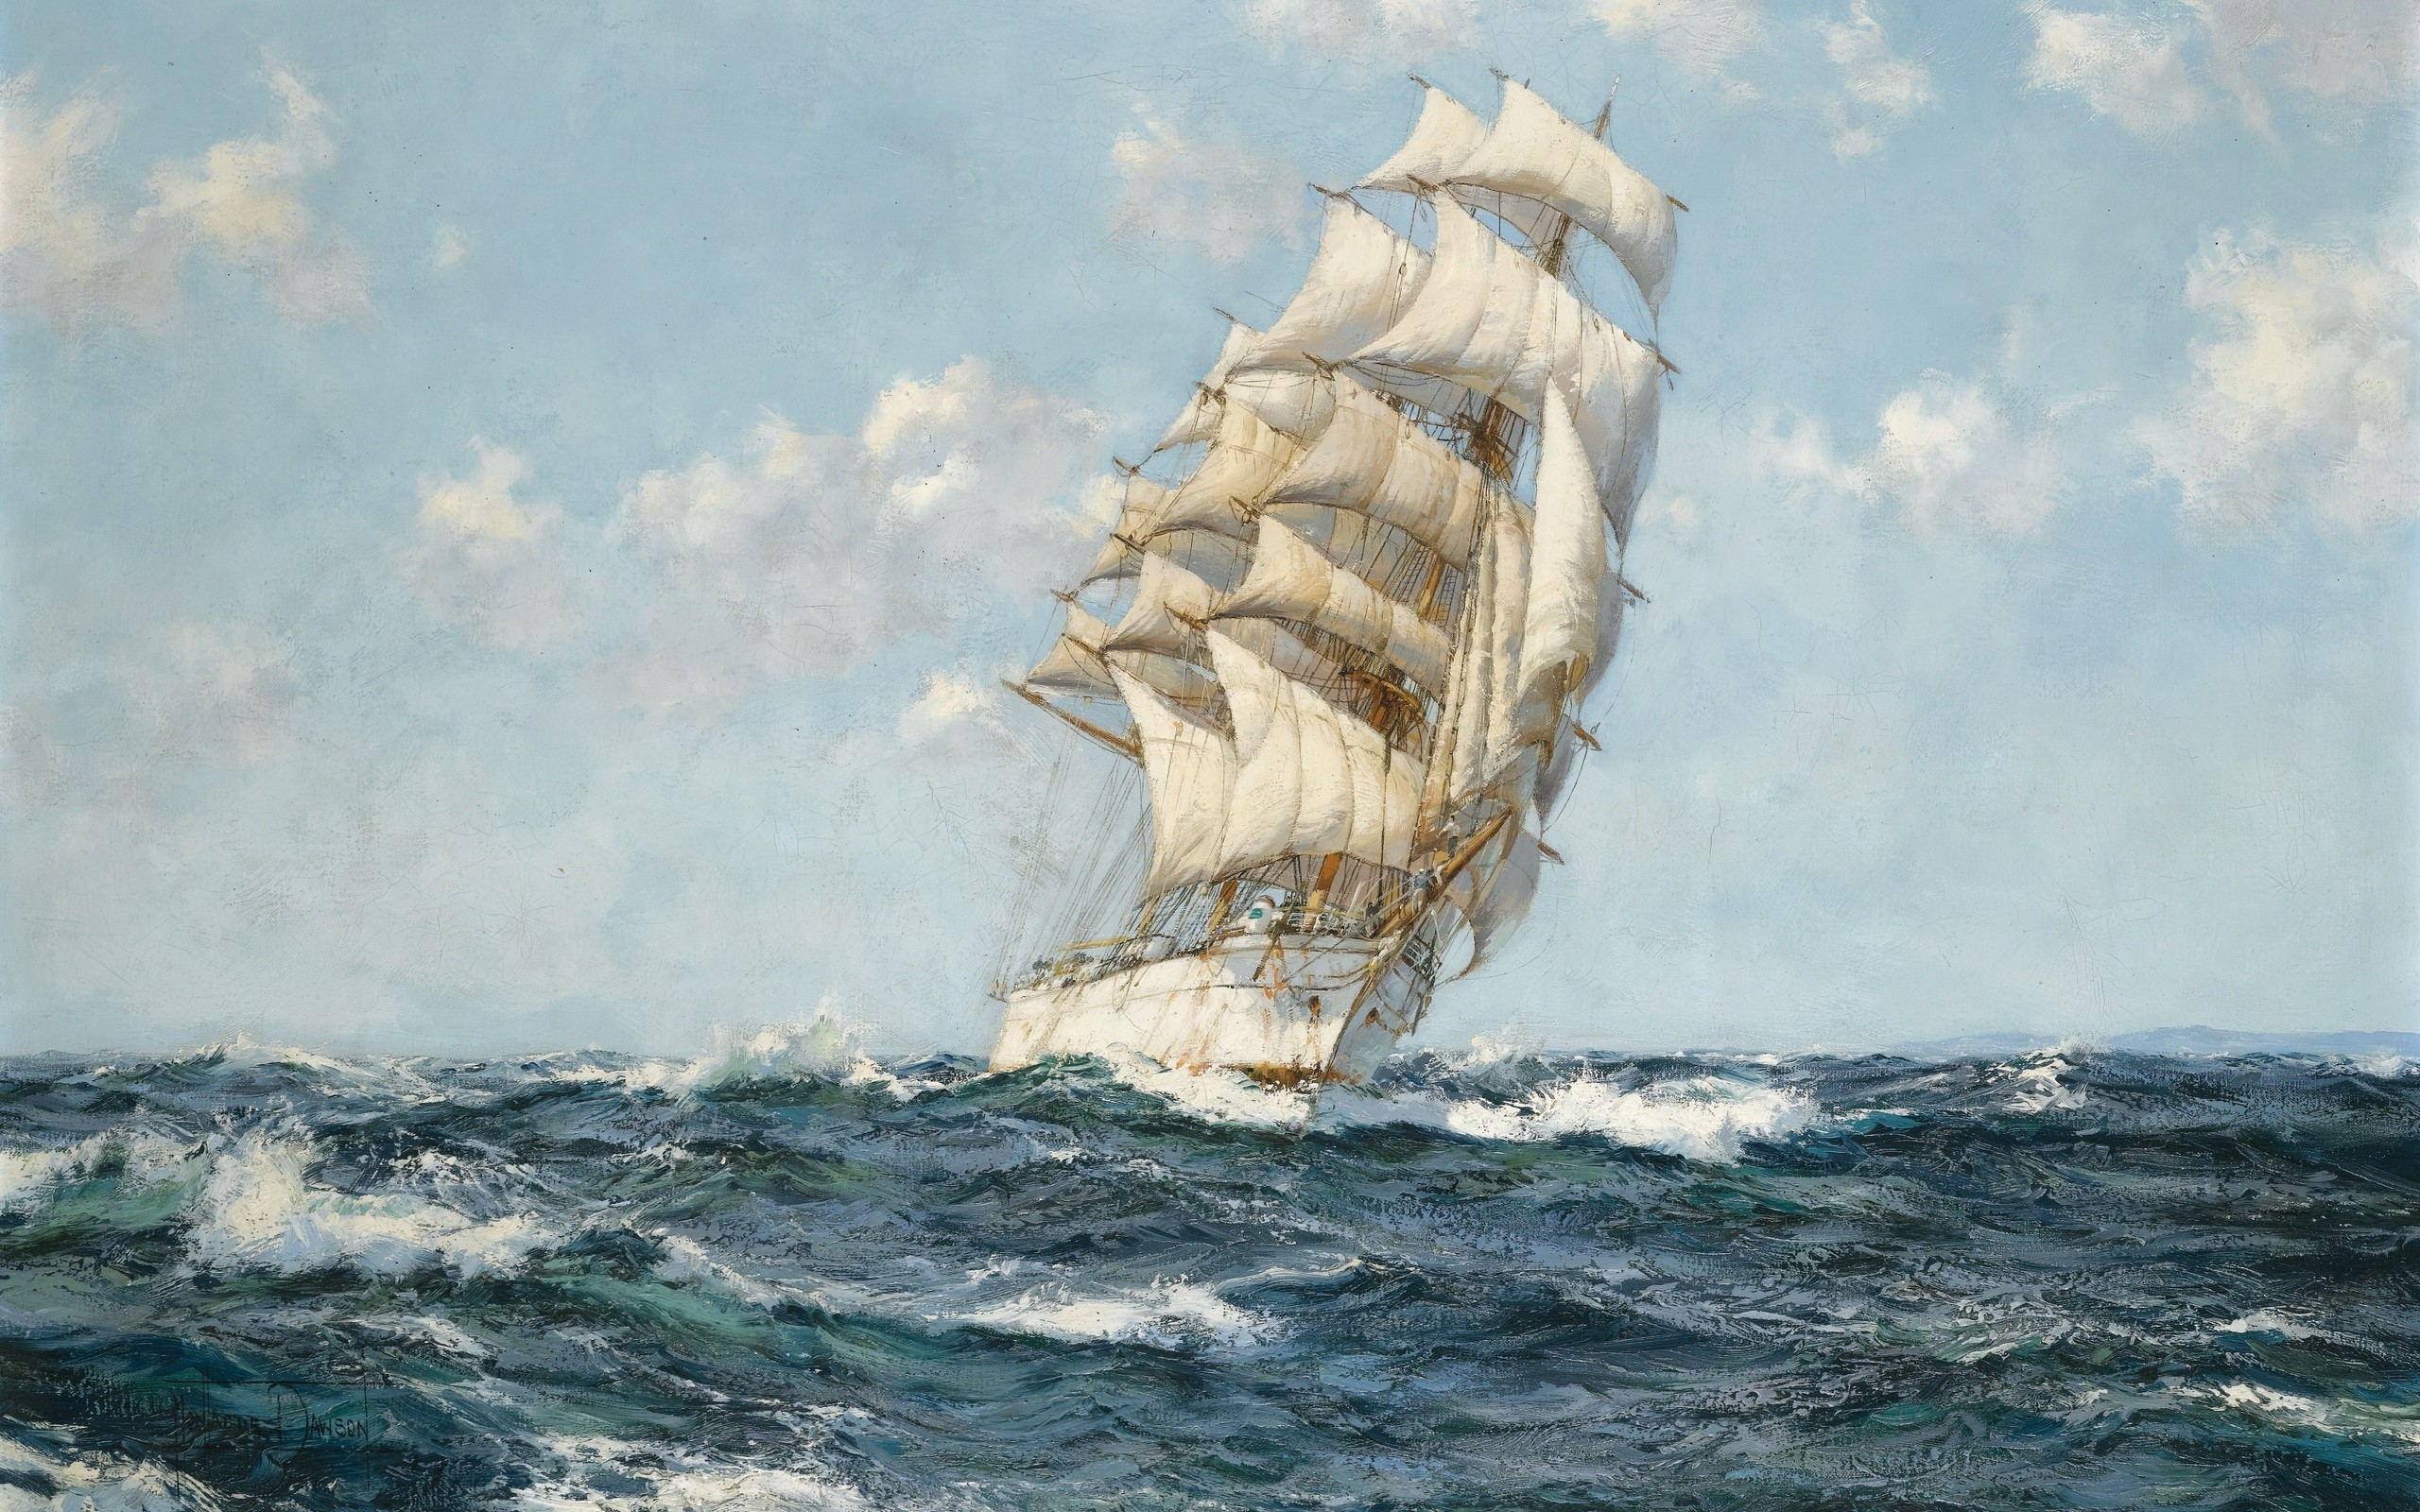 Res: 2560x1600, HD Wallpaper | Background Image ID:355541.  Artistic Sailing Ship